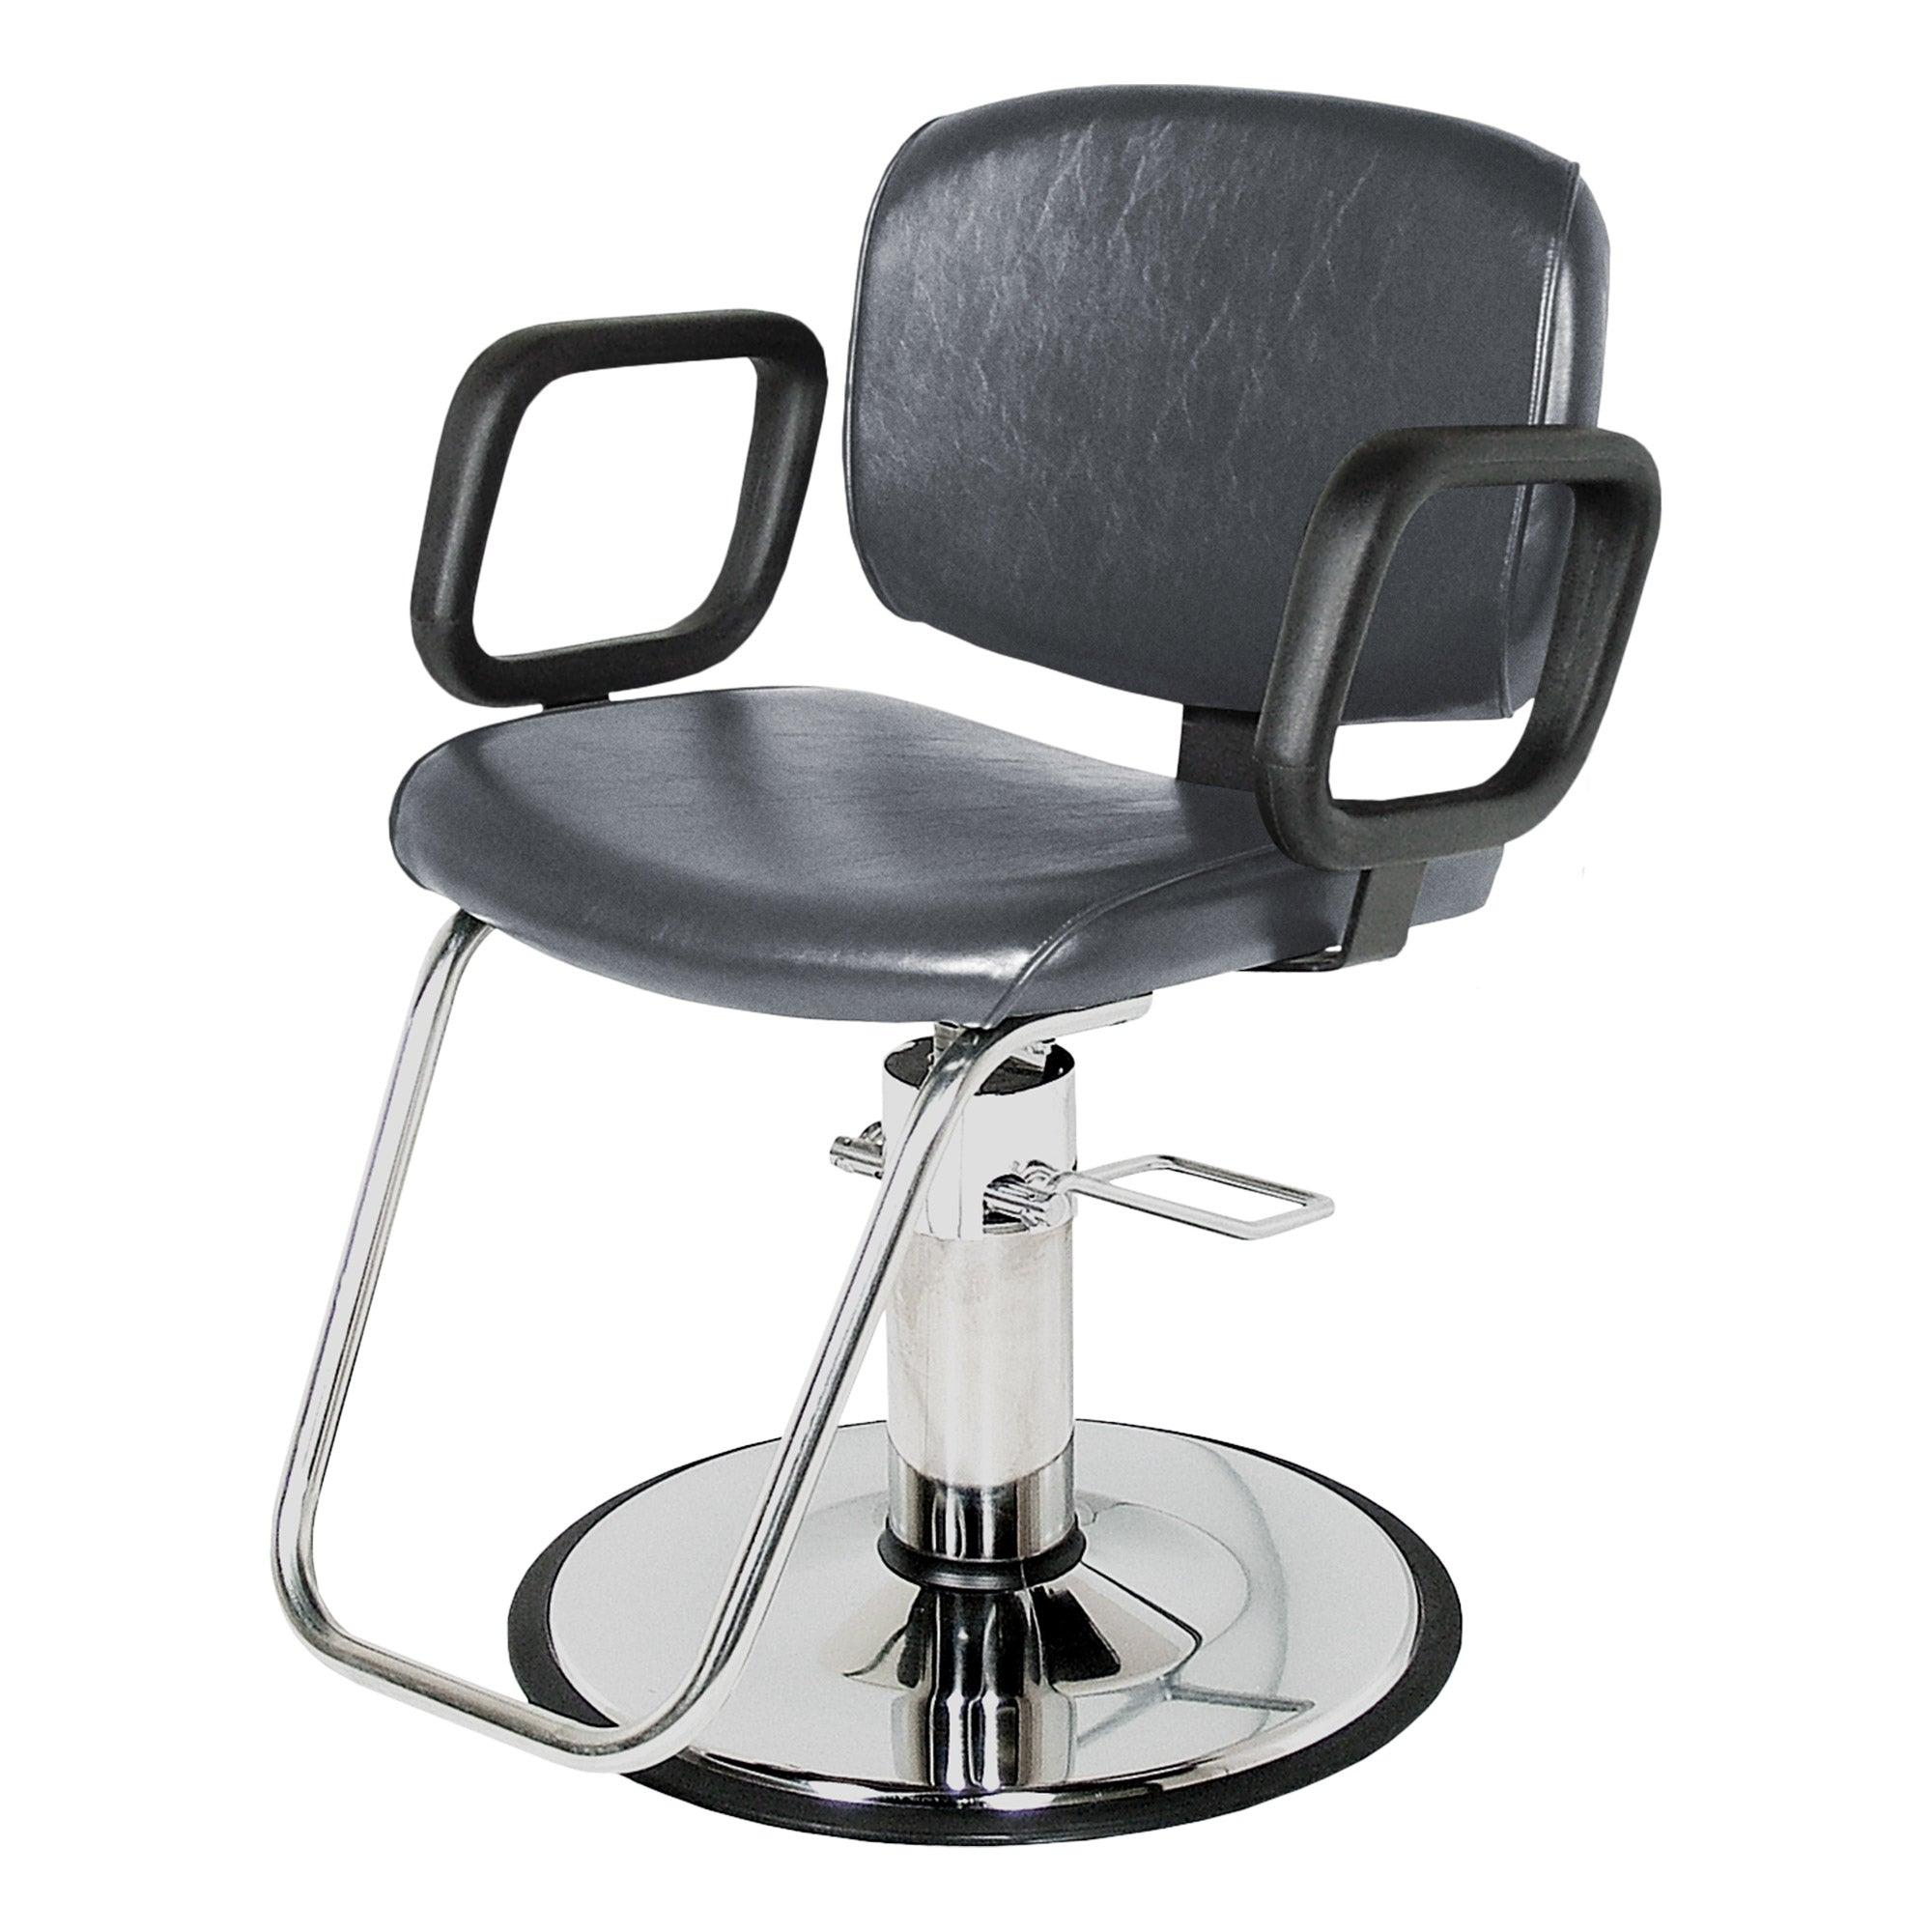 QSE Styling Chair - School Version